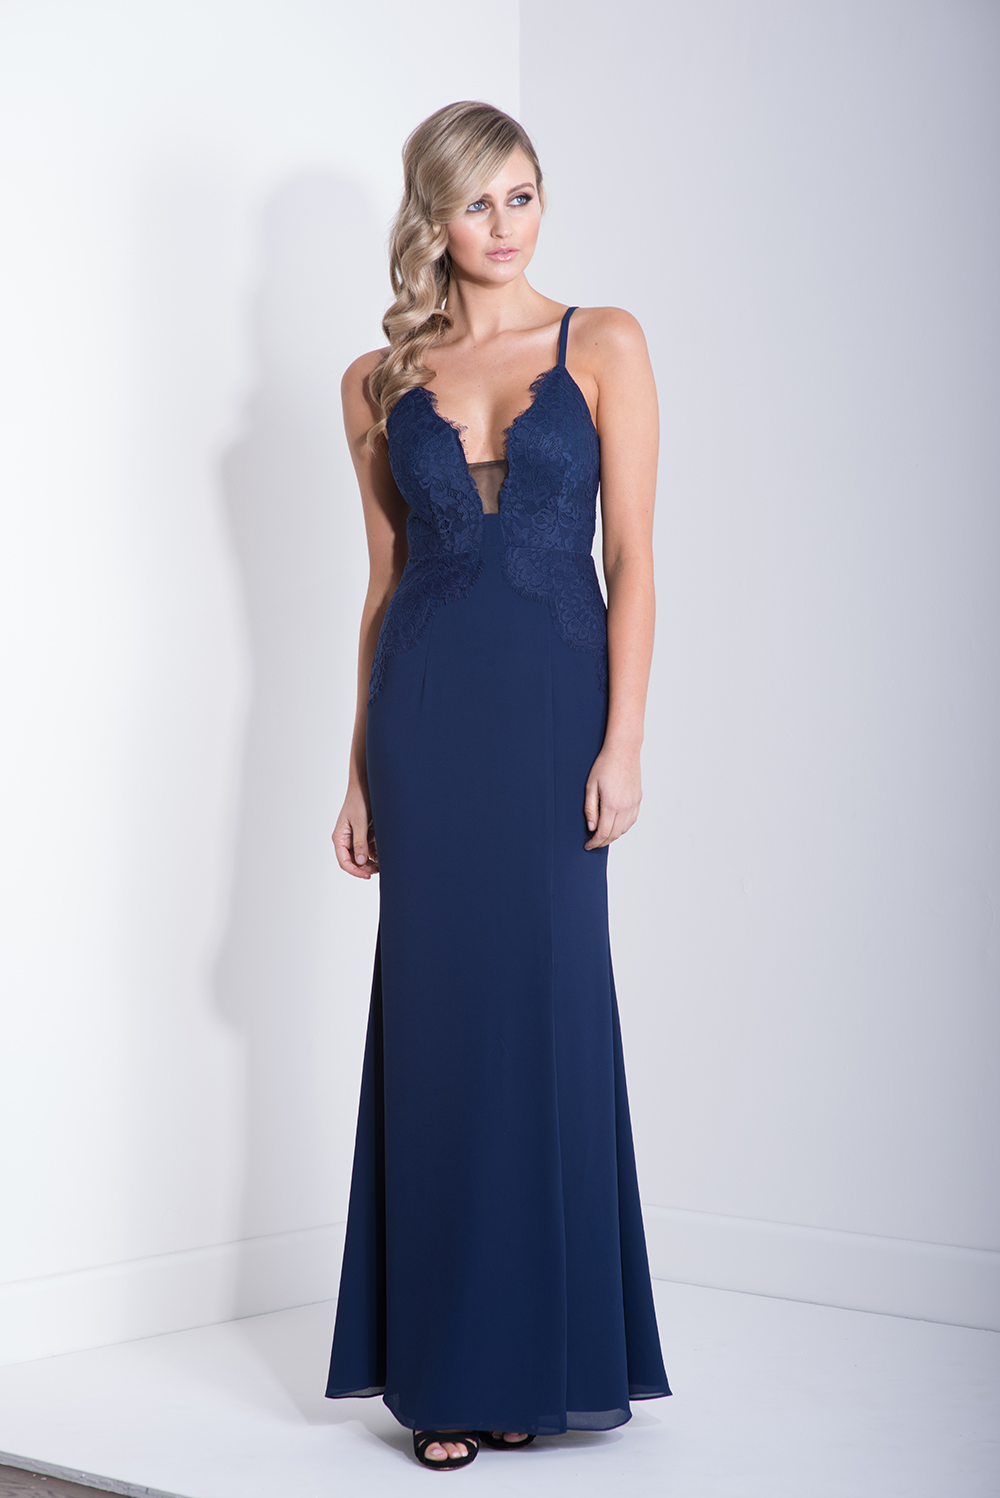 Collection Navy Formal Dresses Pictures - Mothers day card